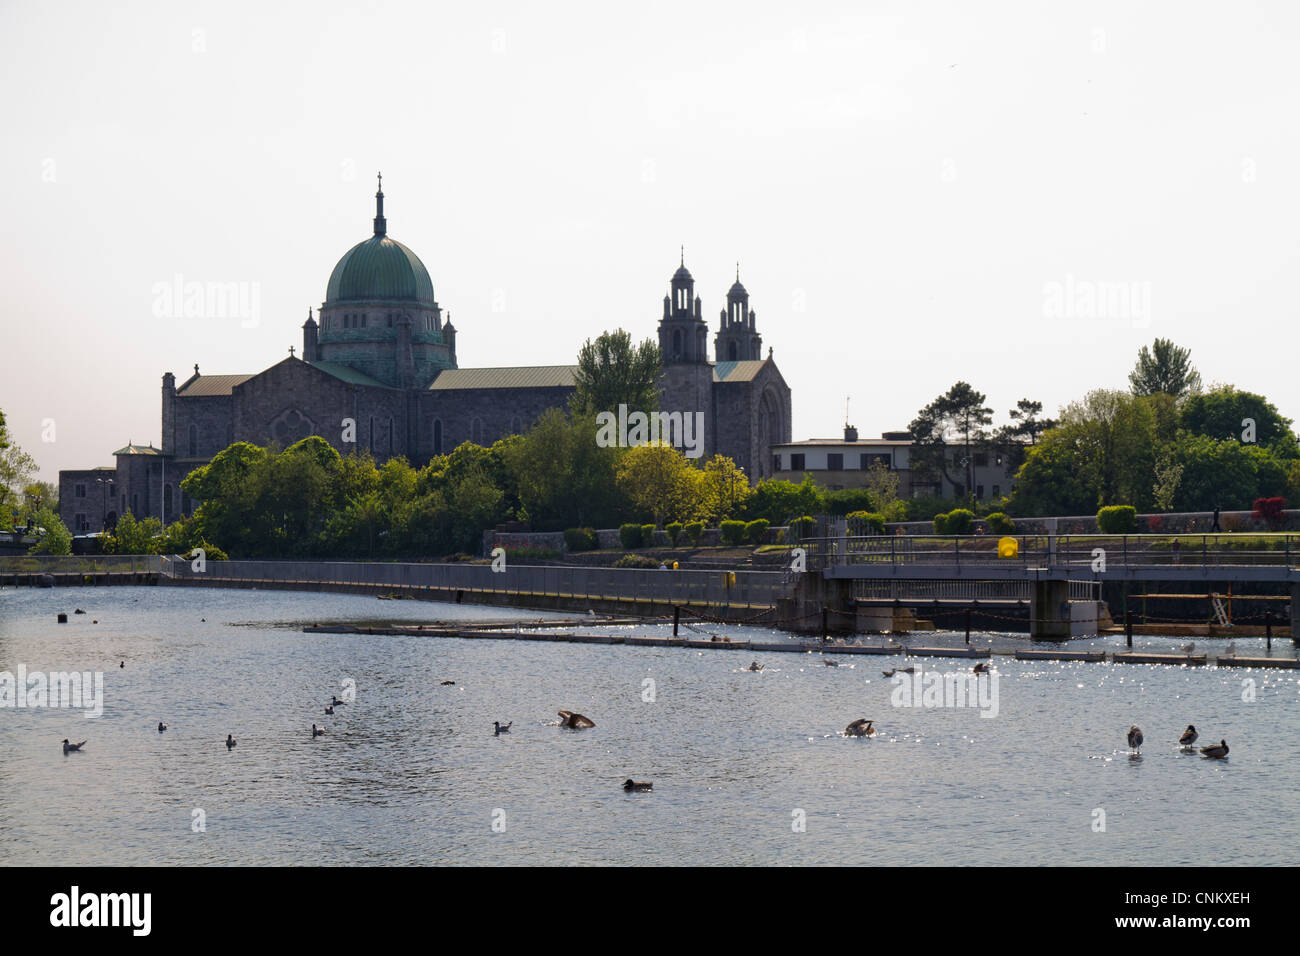 A view of Galway Cathedral from across he river corrib, Galway Ireland - Stock Image